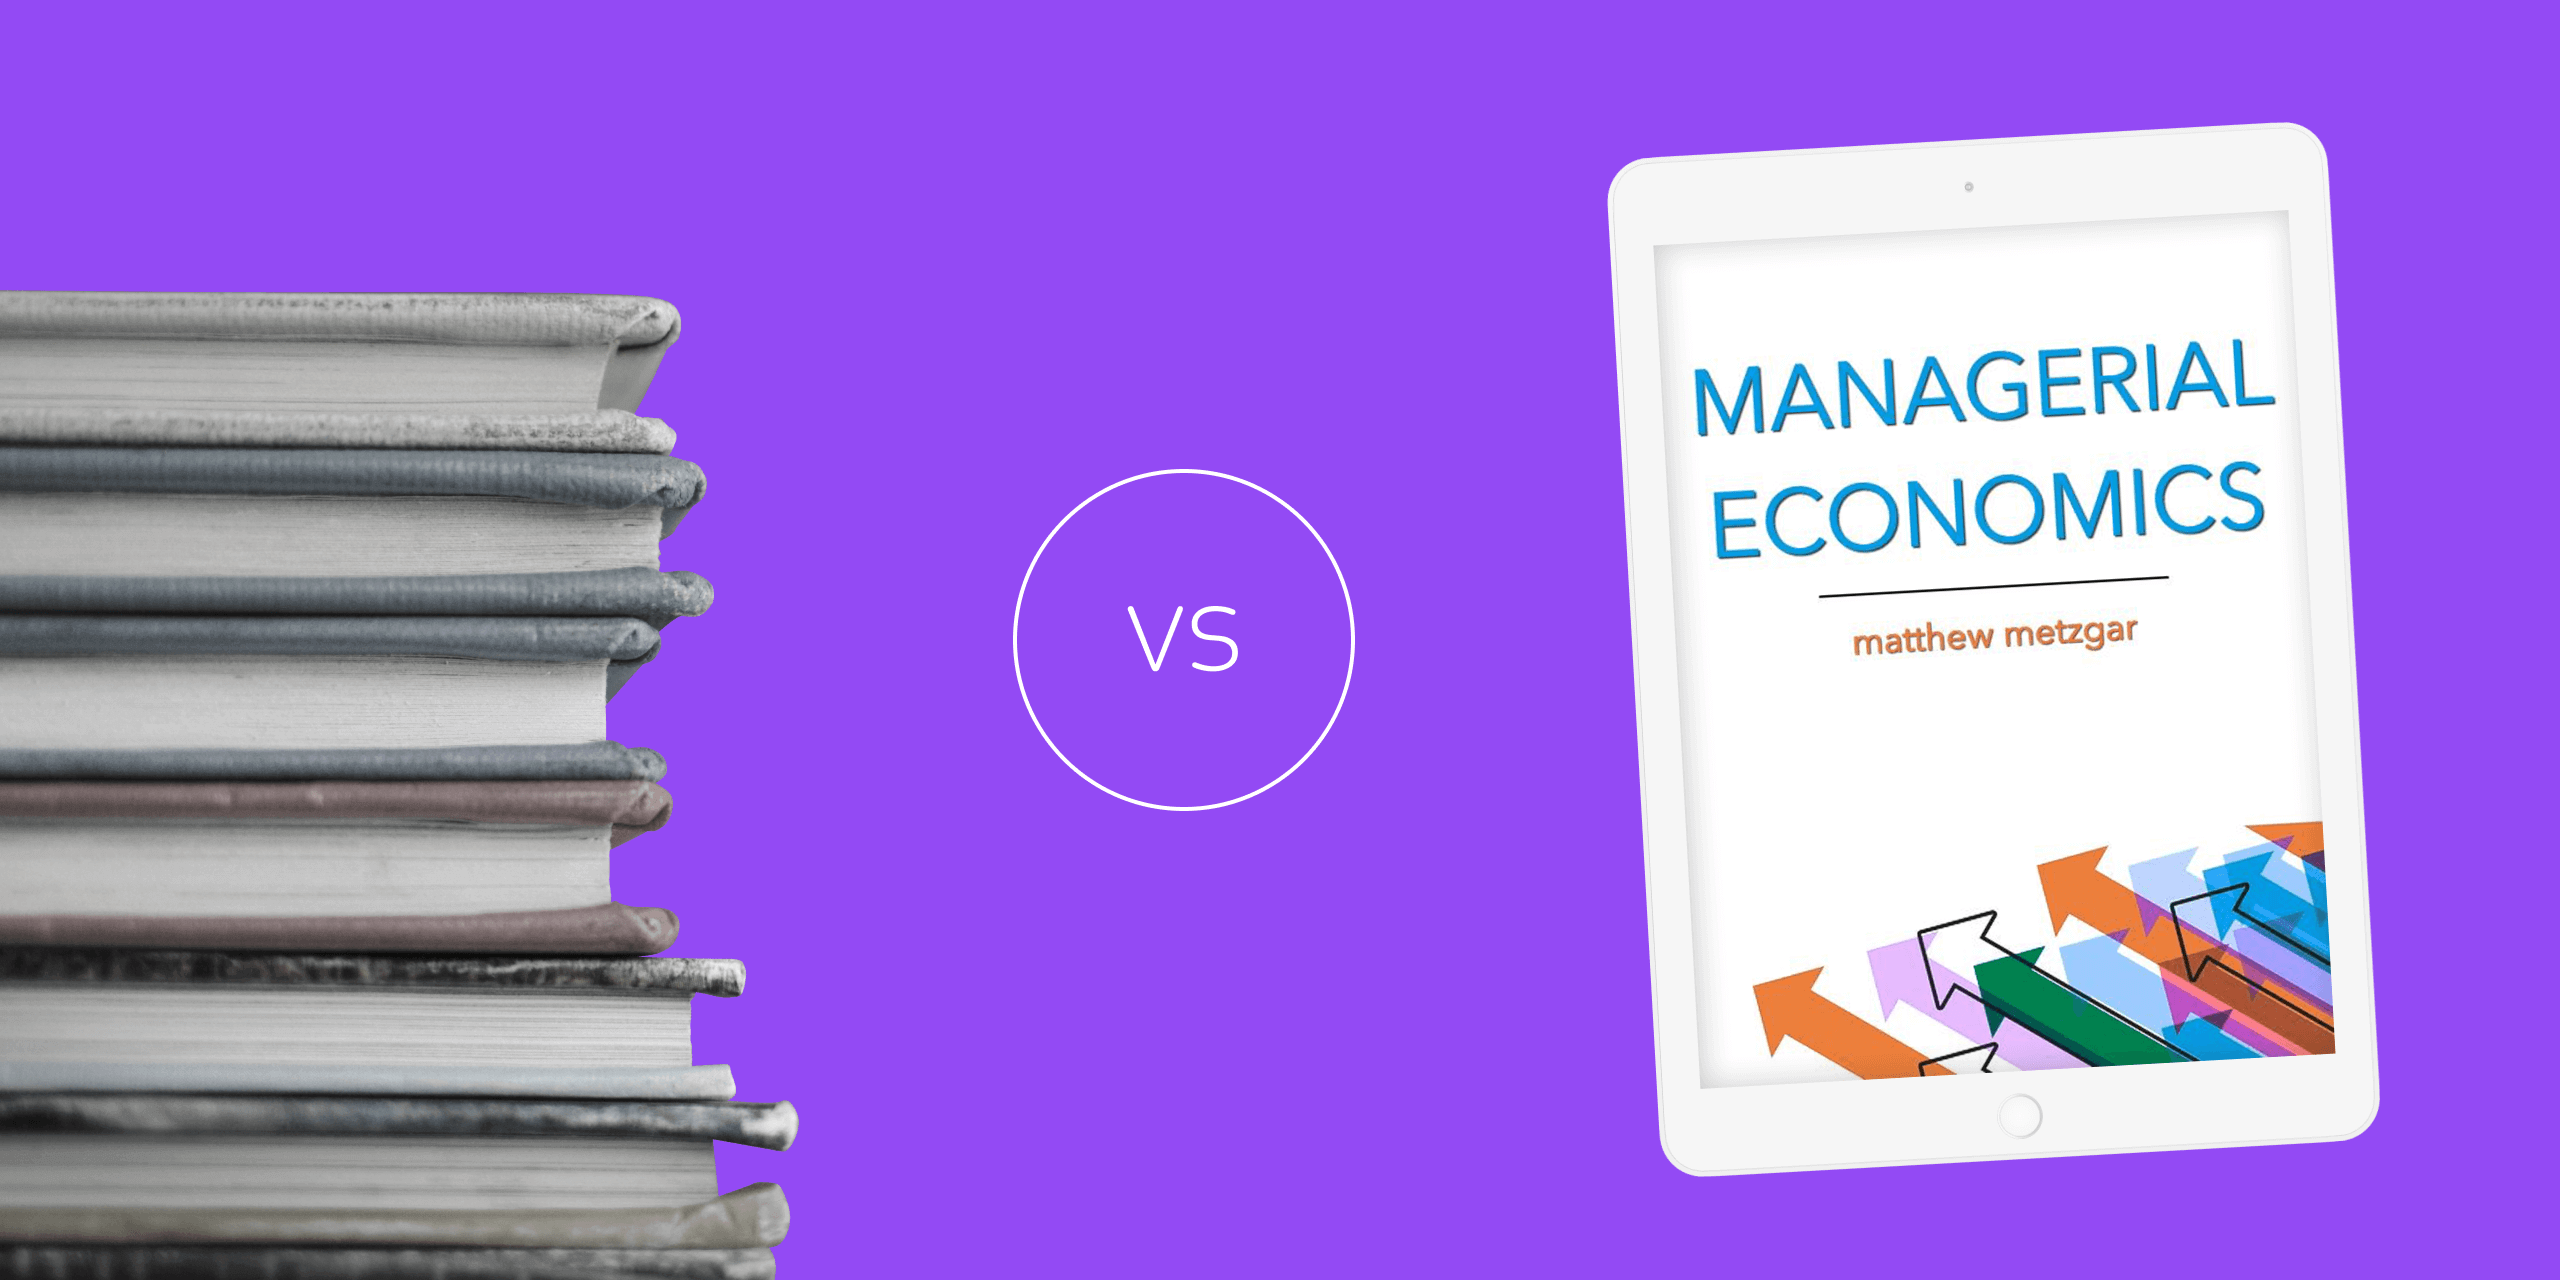 Managerial Economics Textbooks: Which Is The Best?